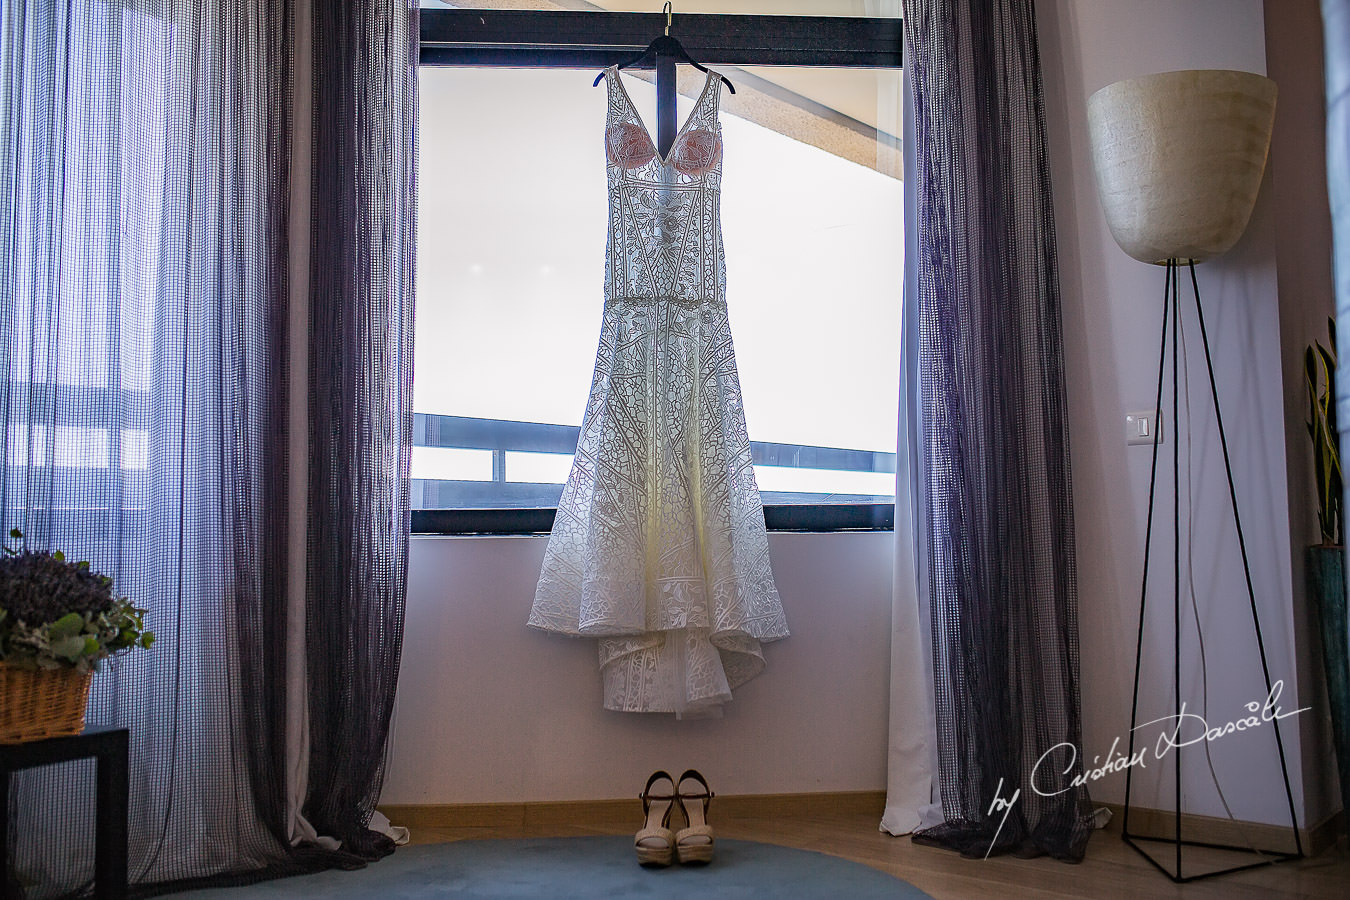 The Wedding dress captured during a wedding photography at the Lighthouse Limassol, by Cyprus Photographer Cristian Dascalu.